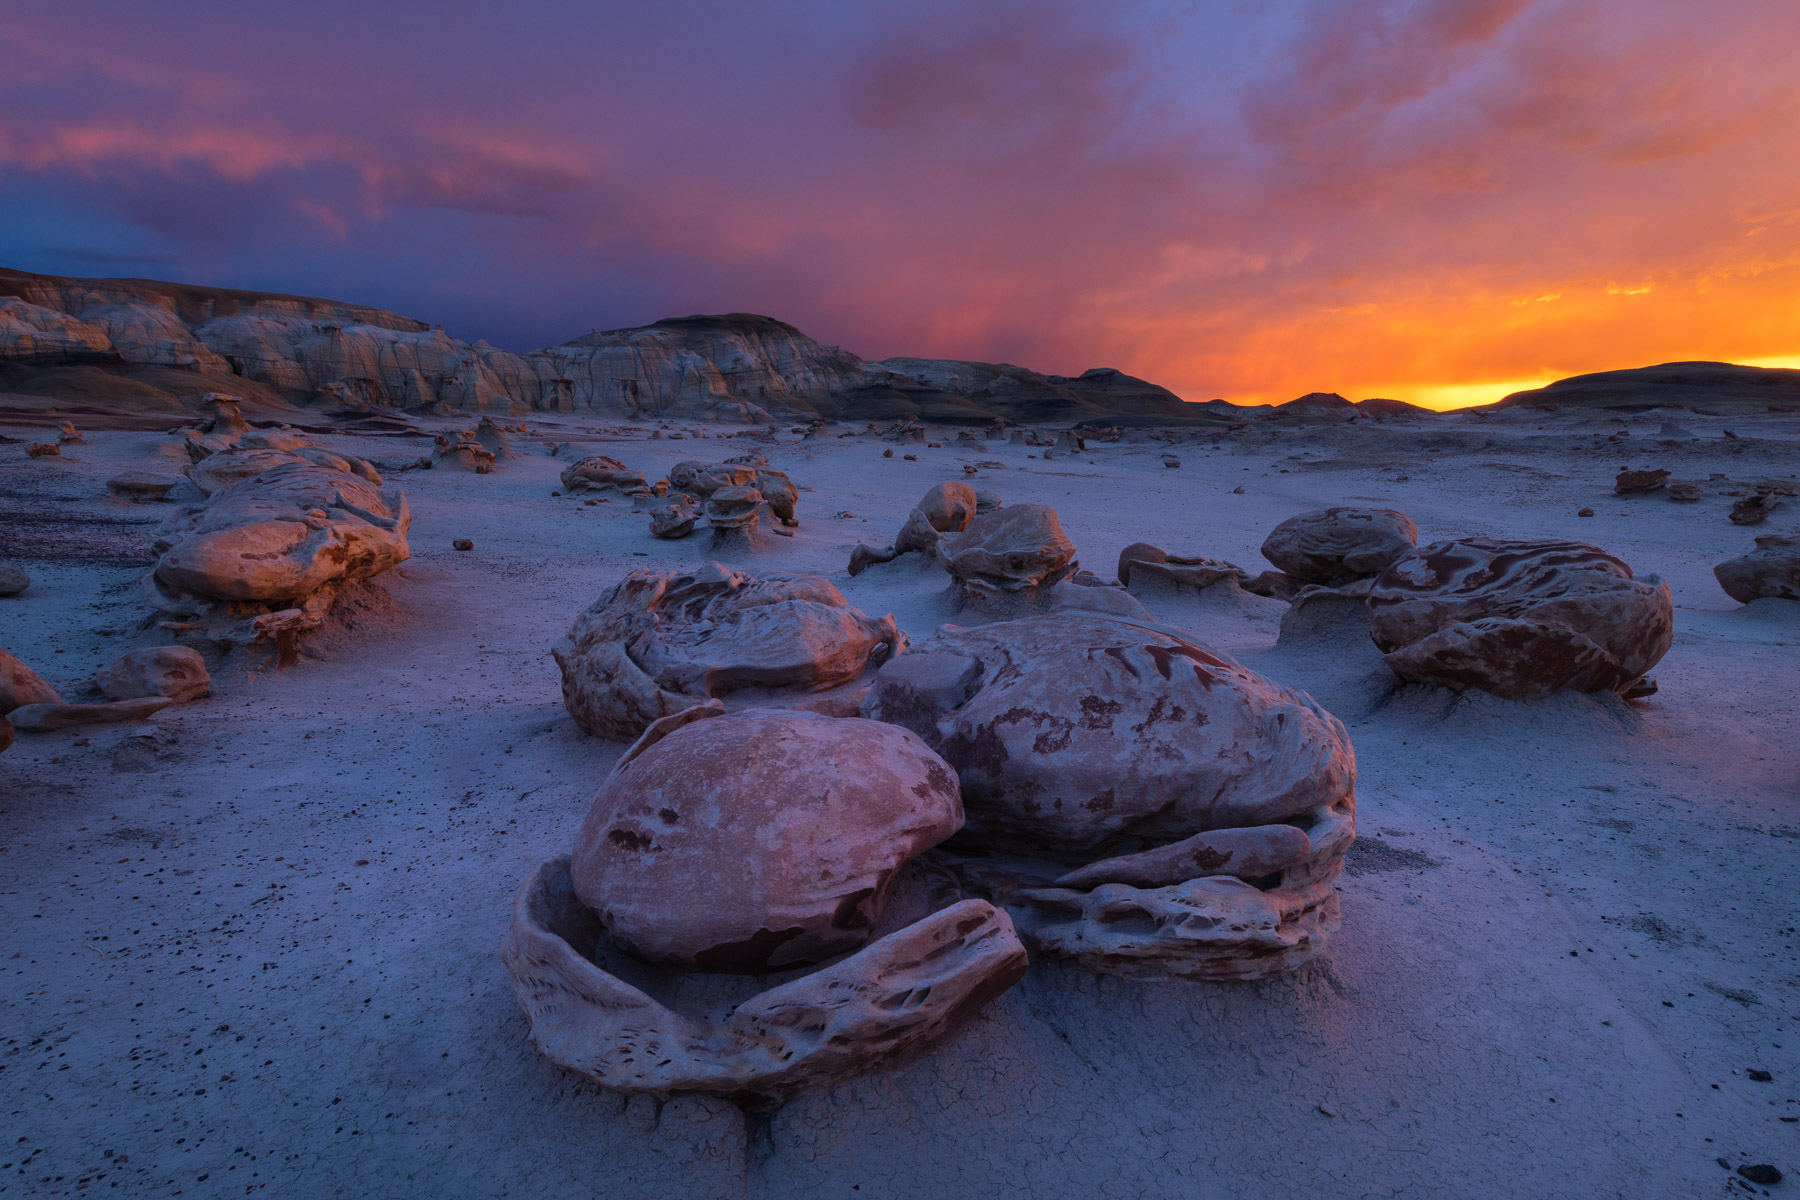 Bizarre landscape captured in the backcountry of the Bisti Badlands, New Mexico.